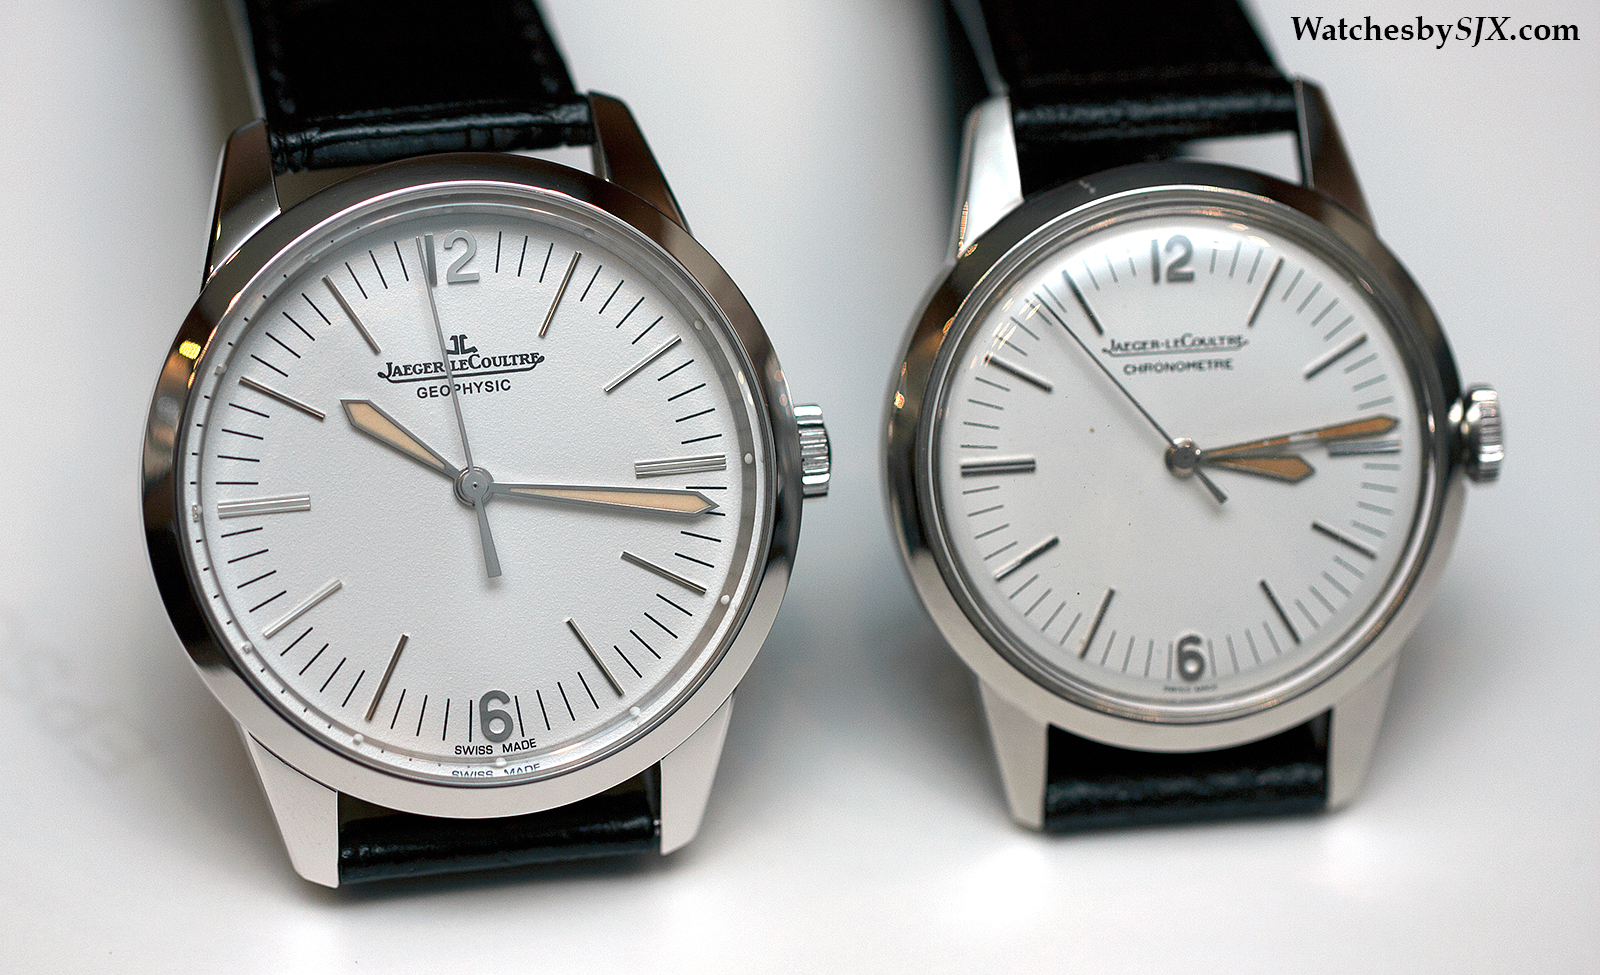 Hands on with the jaeger lecoultre geophysic 1958 reissue with live photos and price sjx watches for Geophysic watches